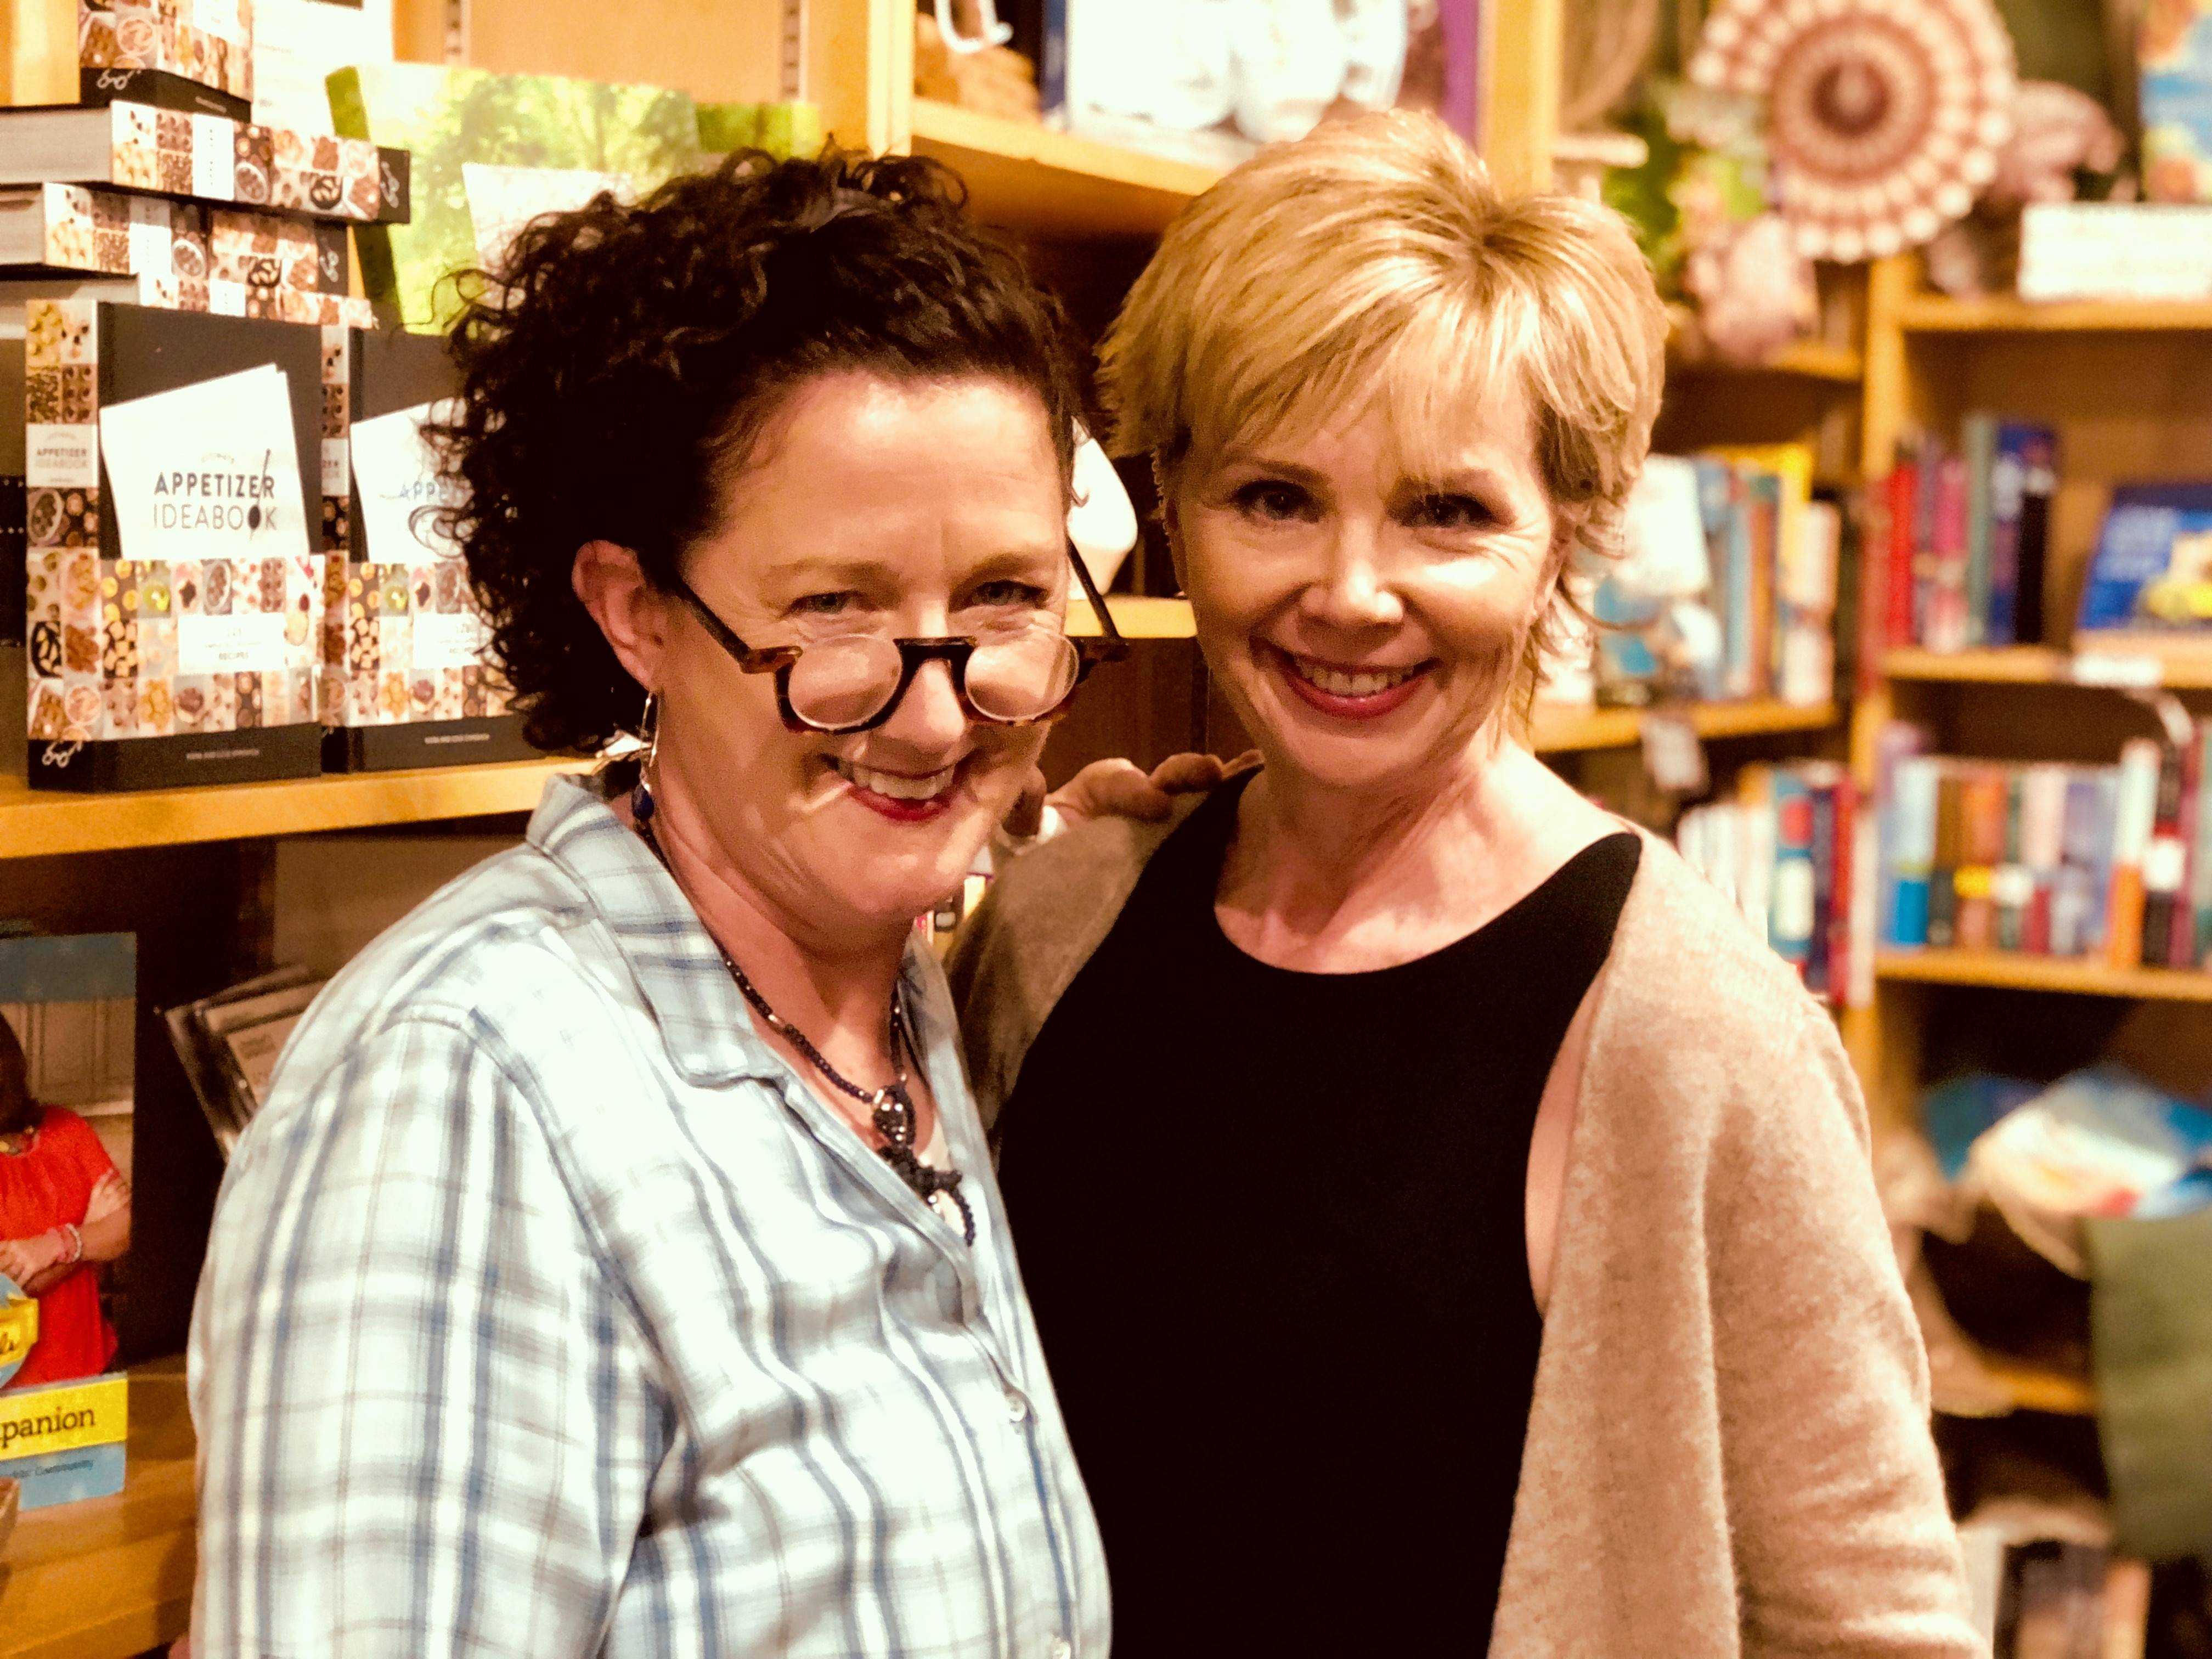 Owners Sandy Koropp, left, and Jenny Riddle inside Wheaton's Prairie Path Books. The pair plan to open a second store in the city's downtown.